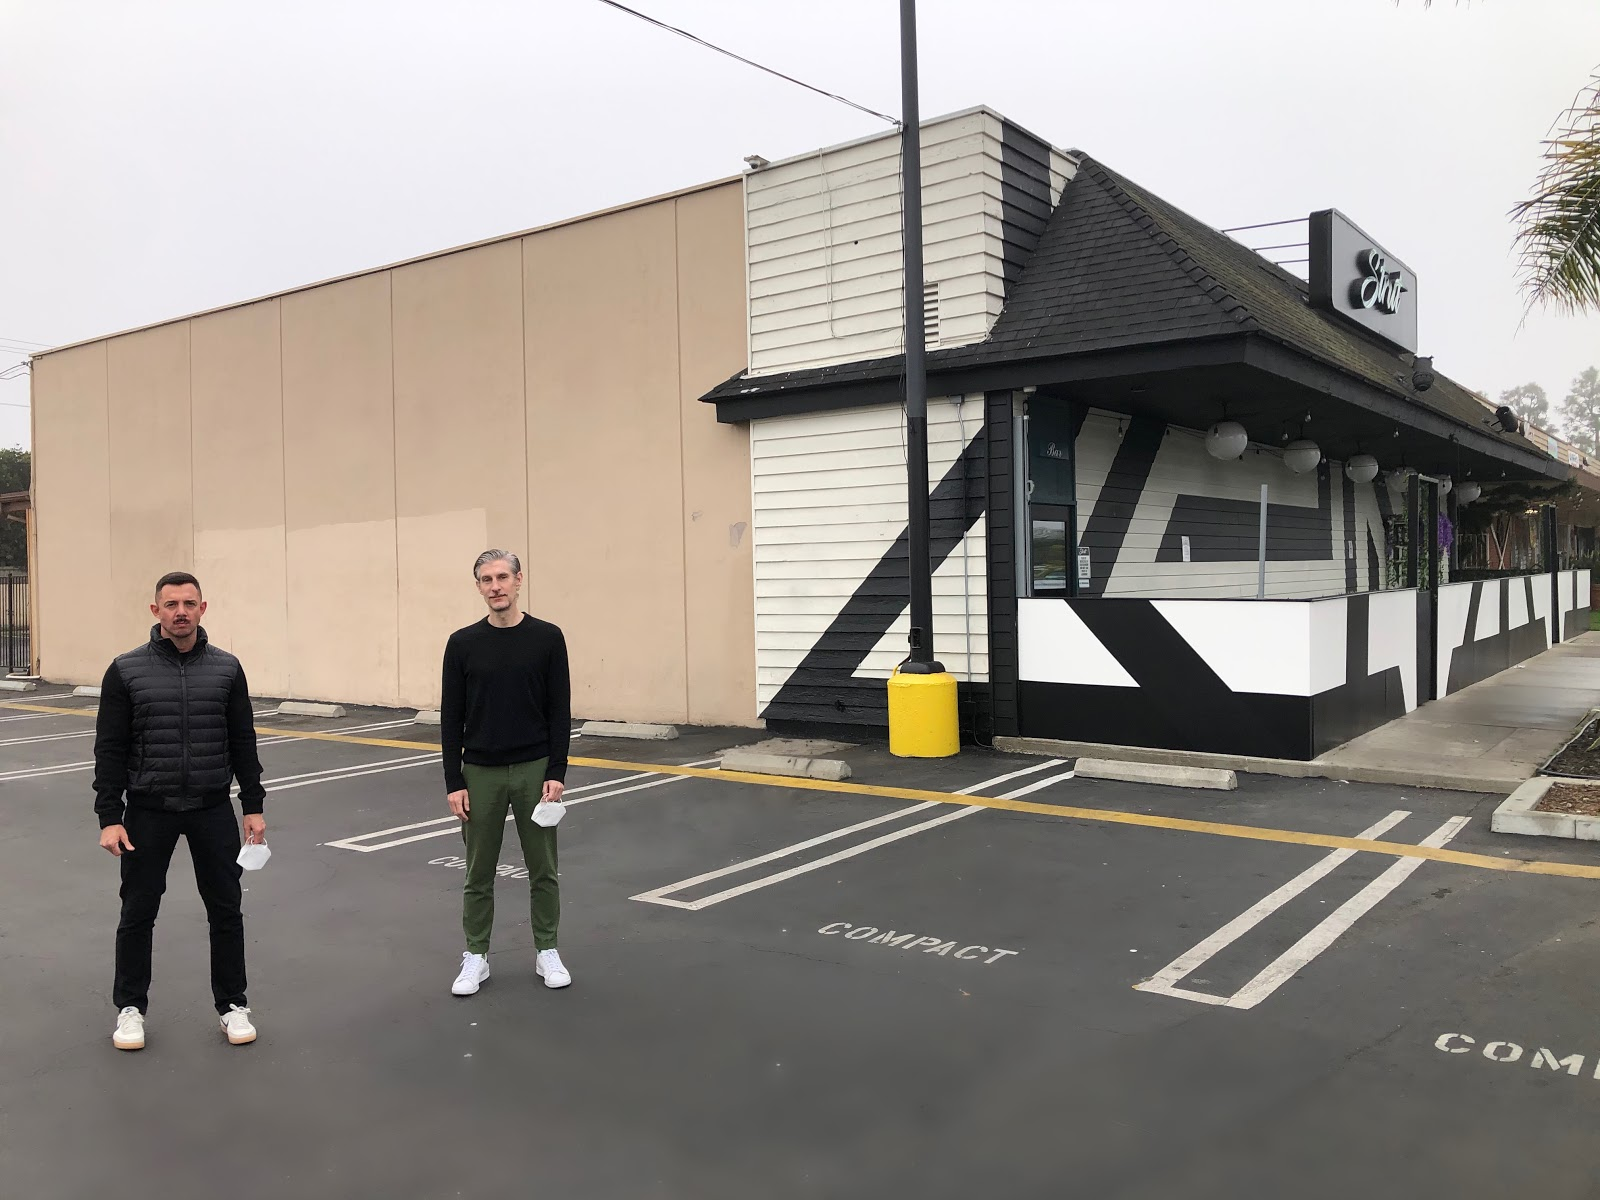 Strut CEO & Founder, Luke Nero (left) and local artist, David Gilmore in front of wall dedicated to mural at Strut, prior to the artwork being created